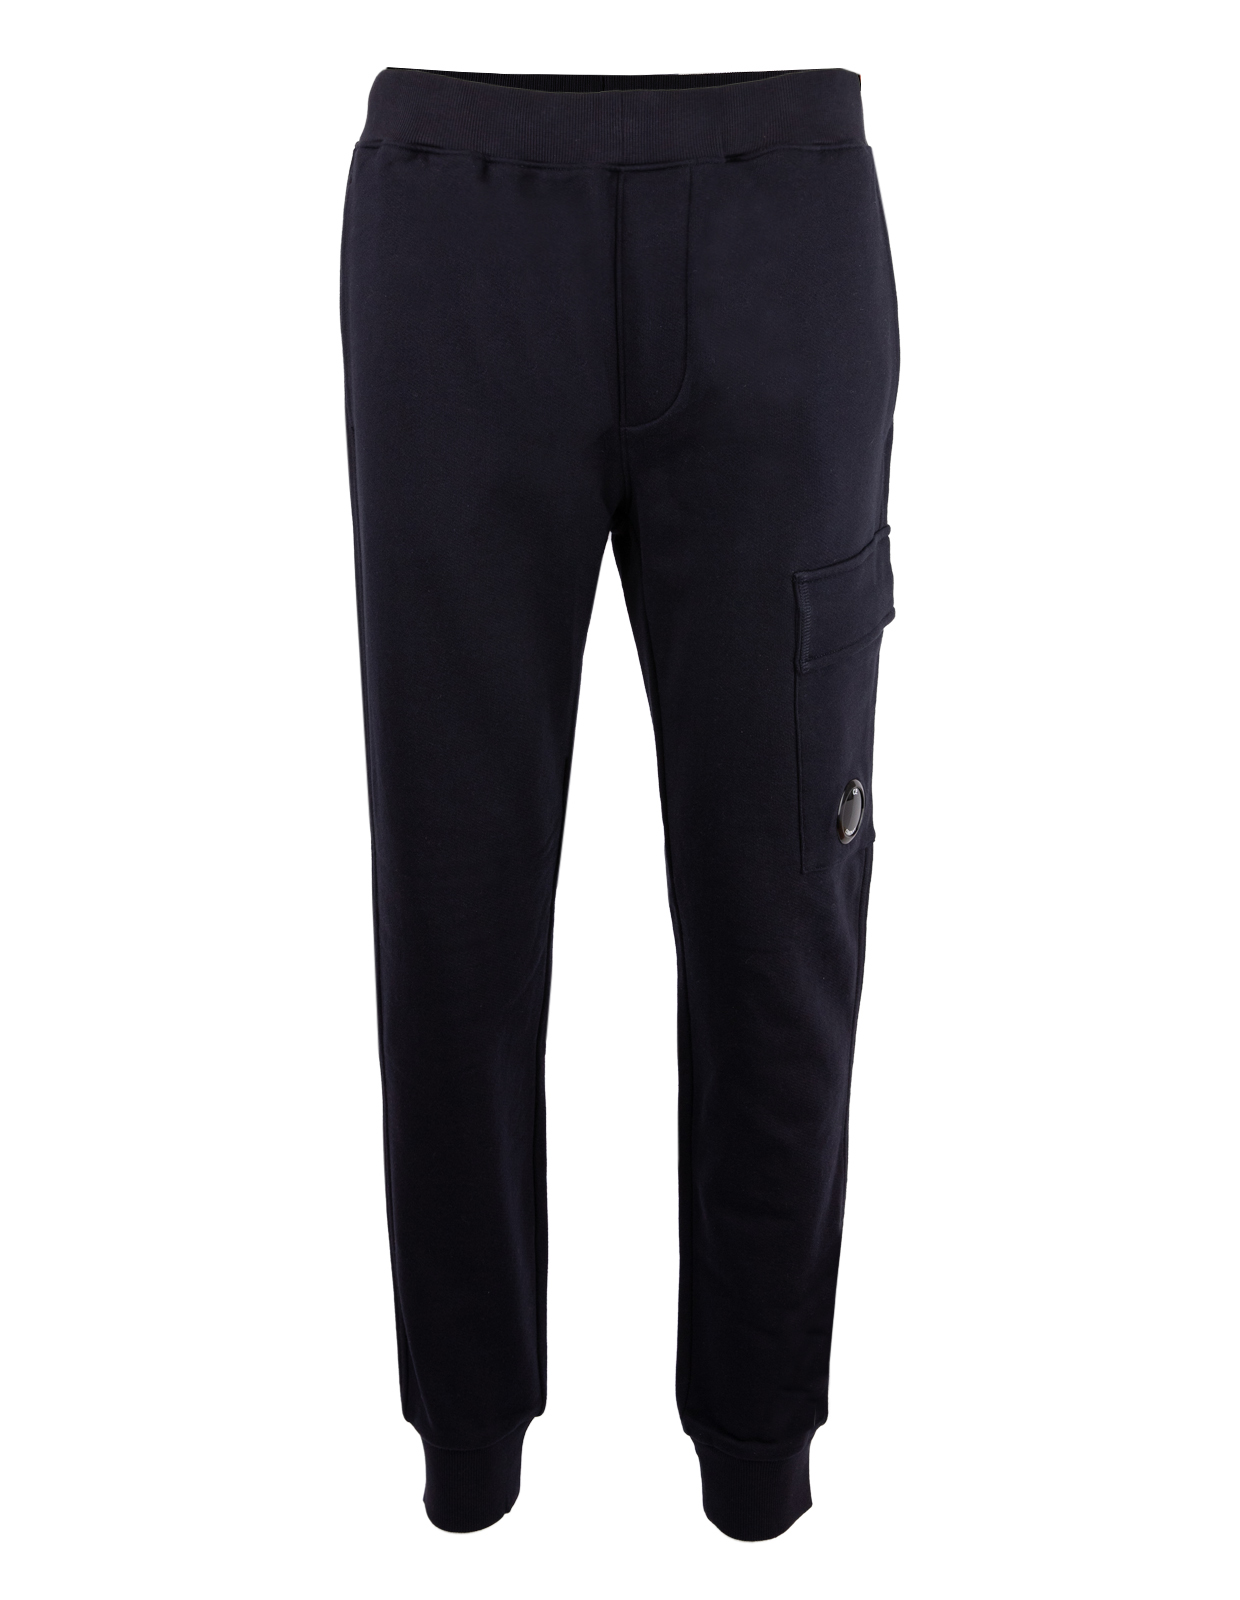 Lens Pocket Sweatpants Navy